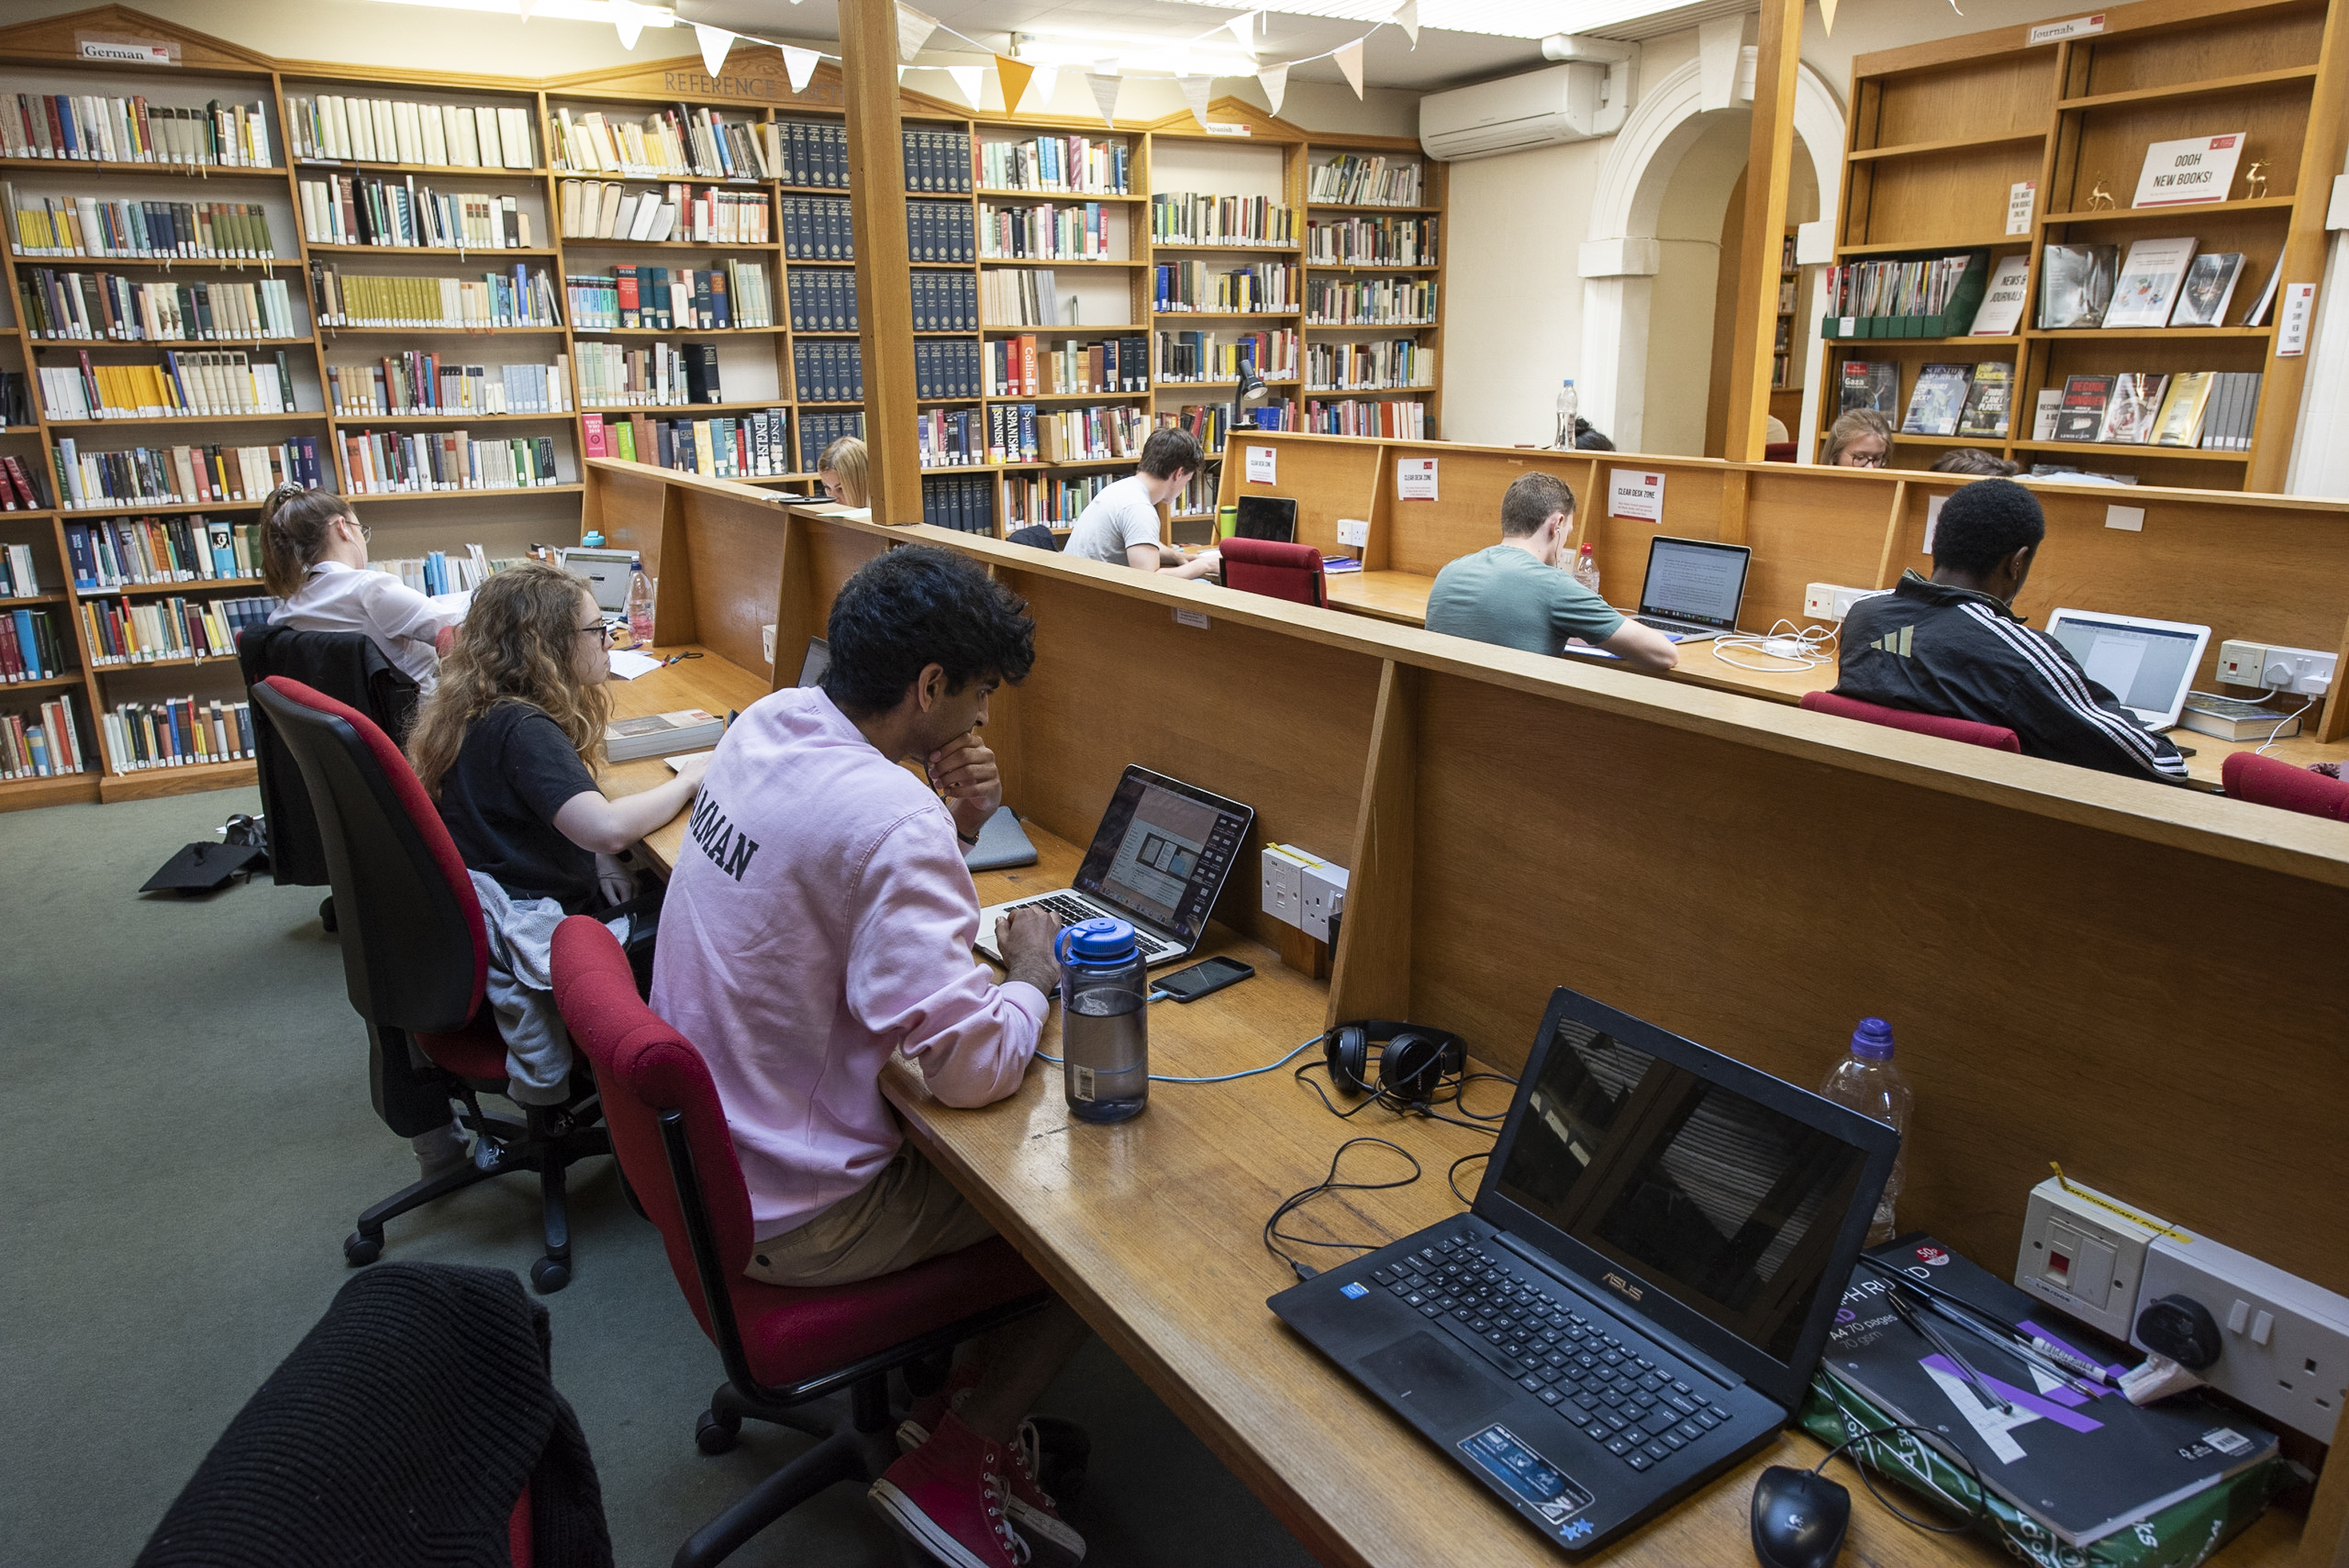 Hertford College Library reading room with students